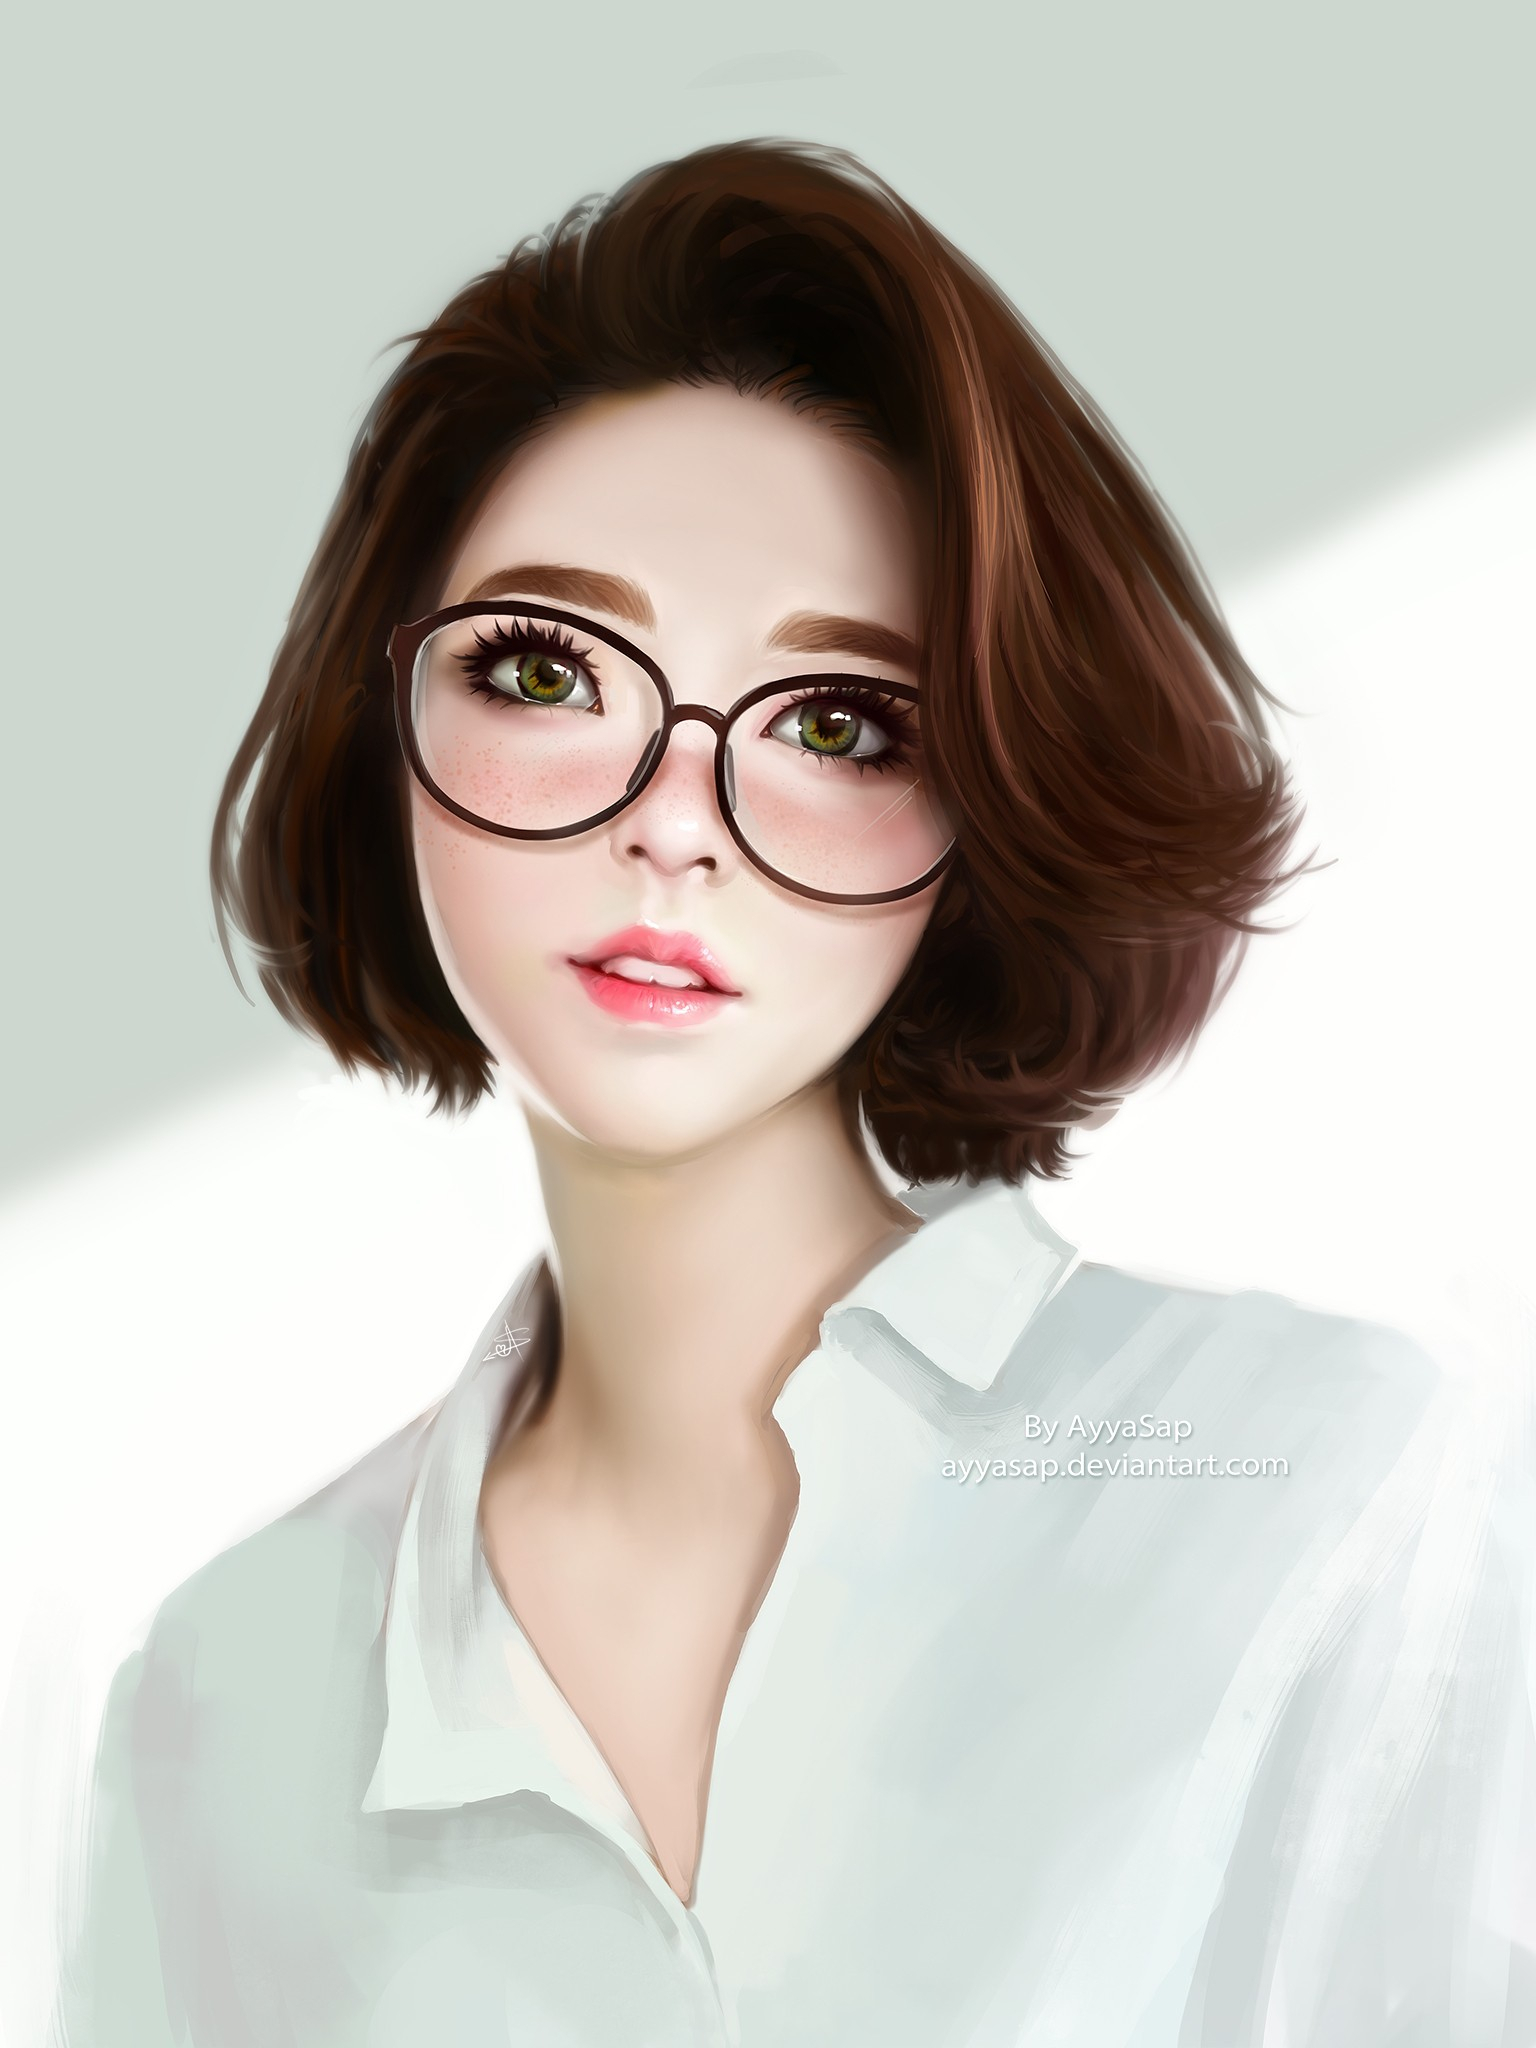 Drawing Girl With Glasses Short Hair